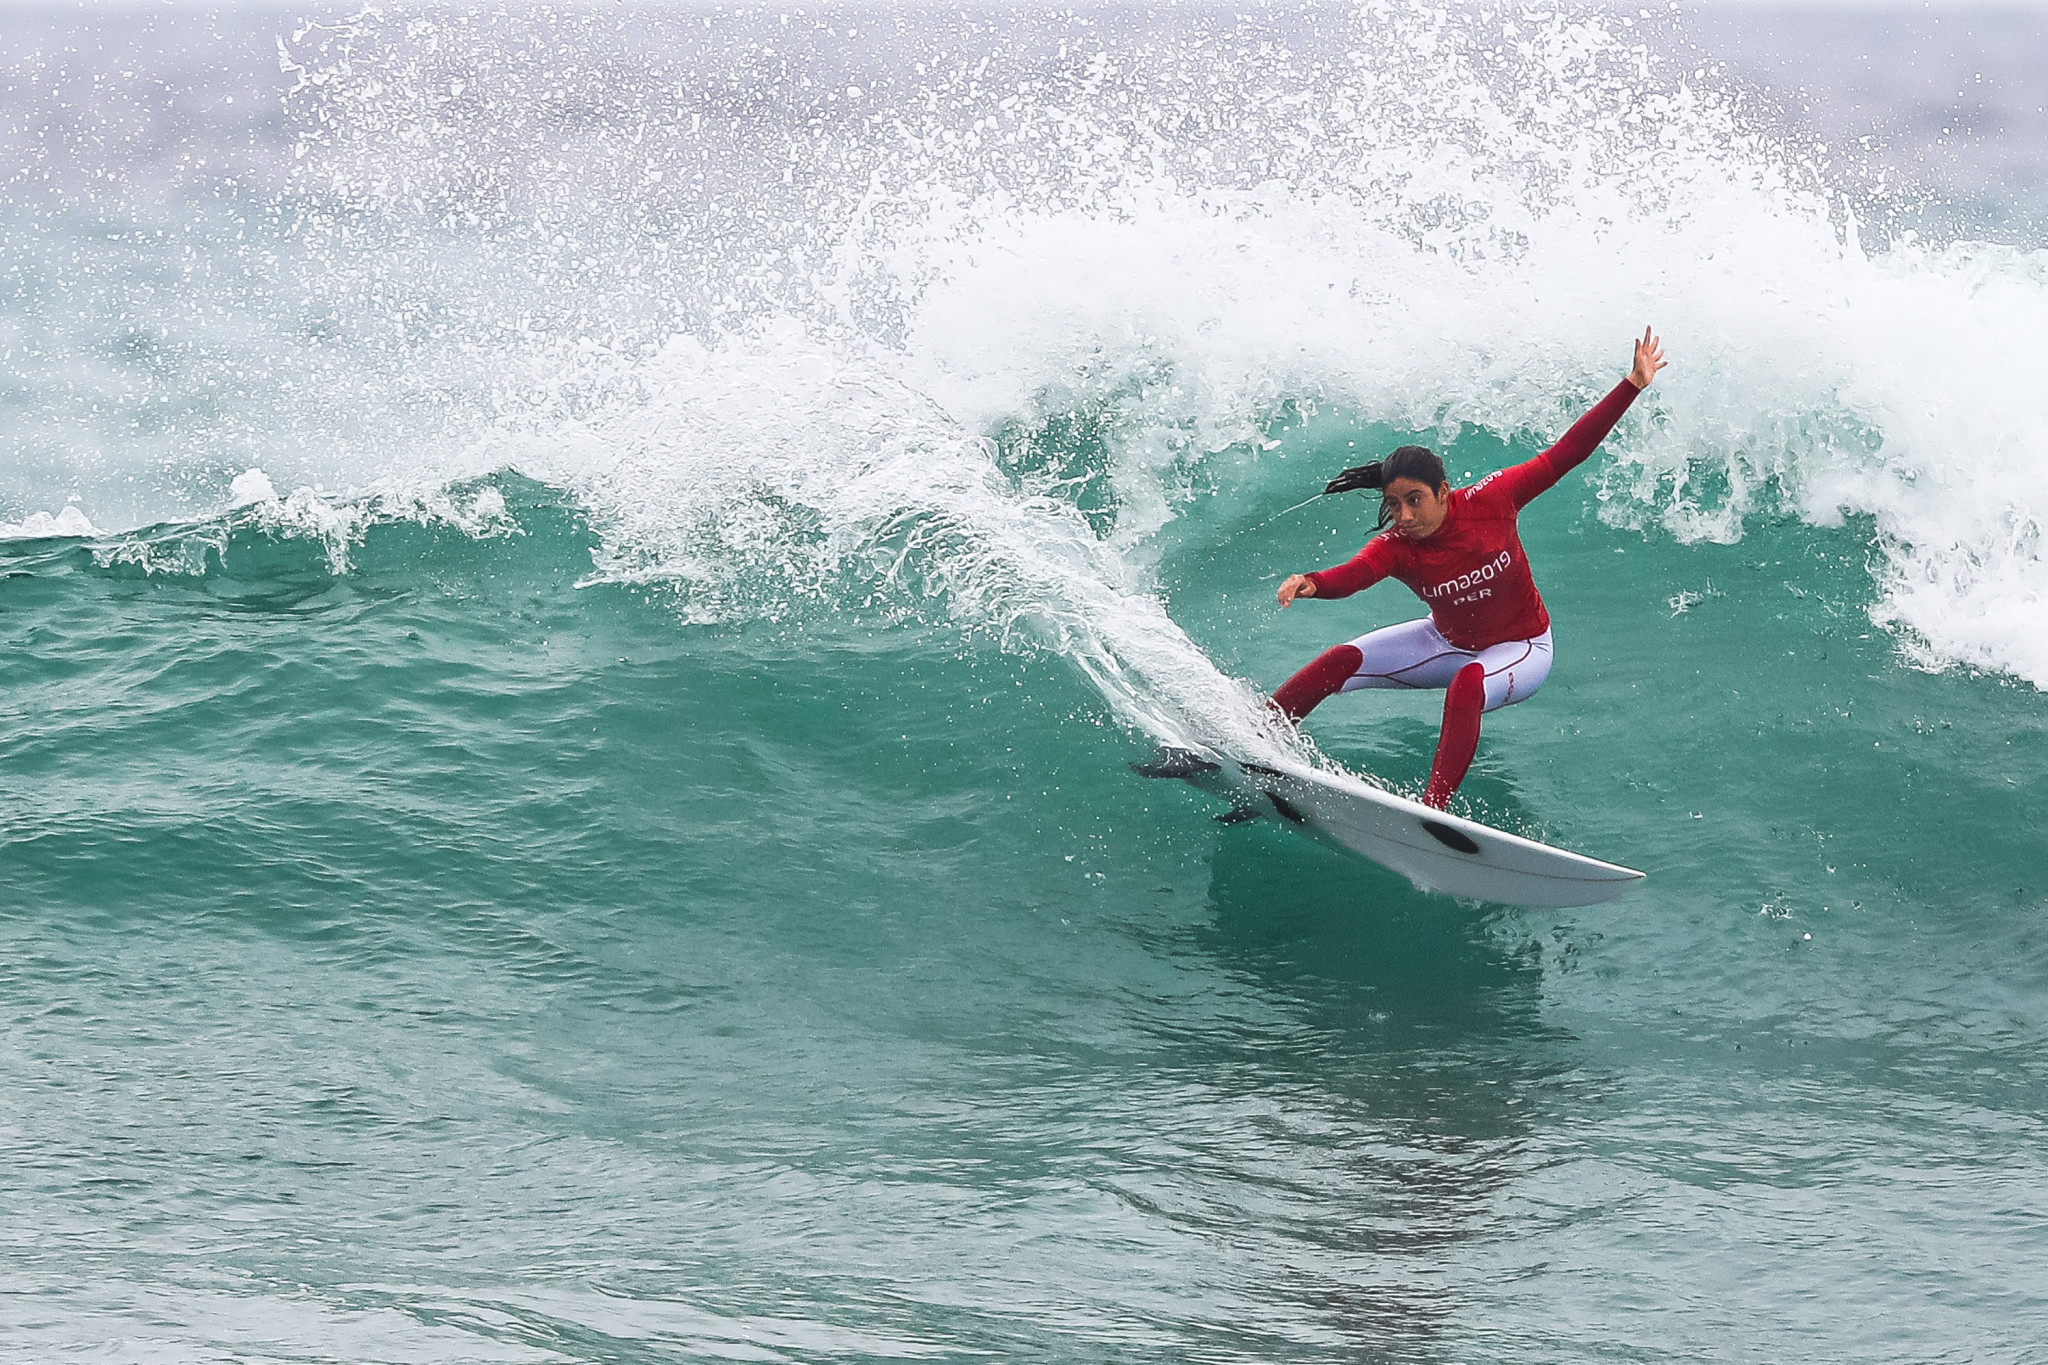 Many surfers had already qualified for Tokyo 2020 at events such as the Lima 2019 Pan American Games, but there were still some places left ©Getty Images